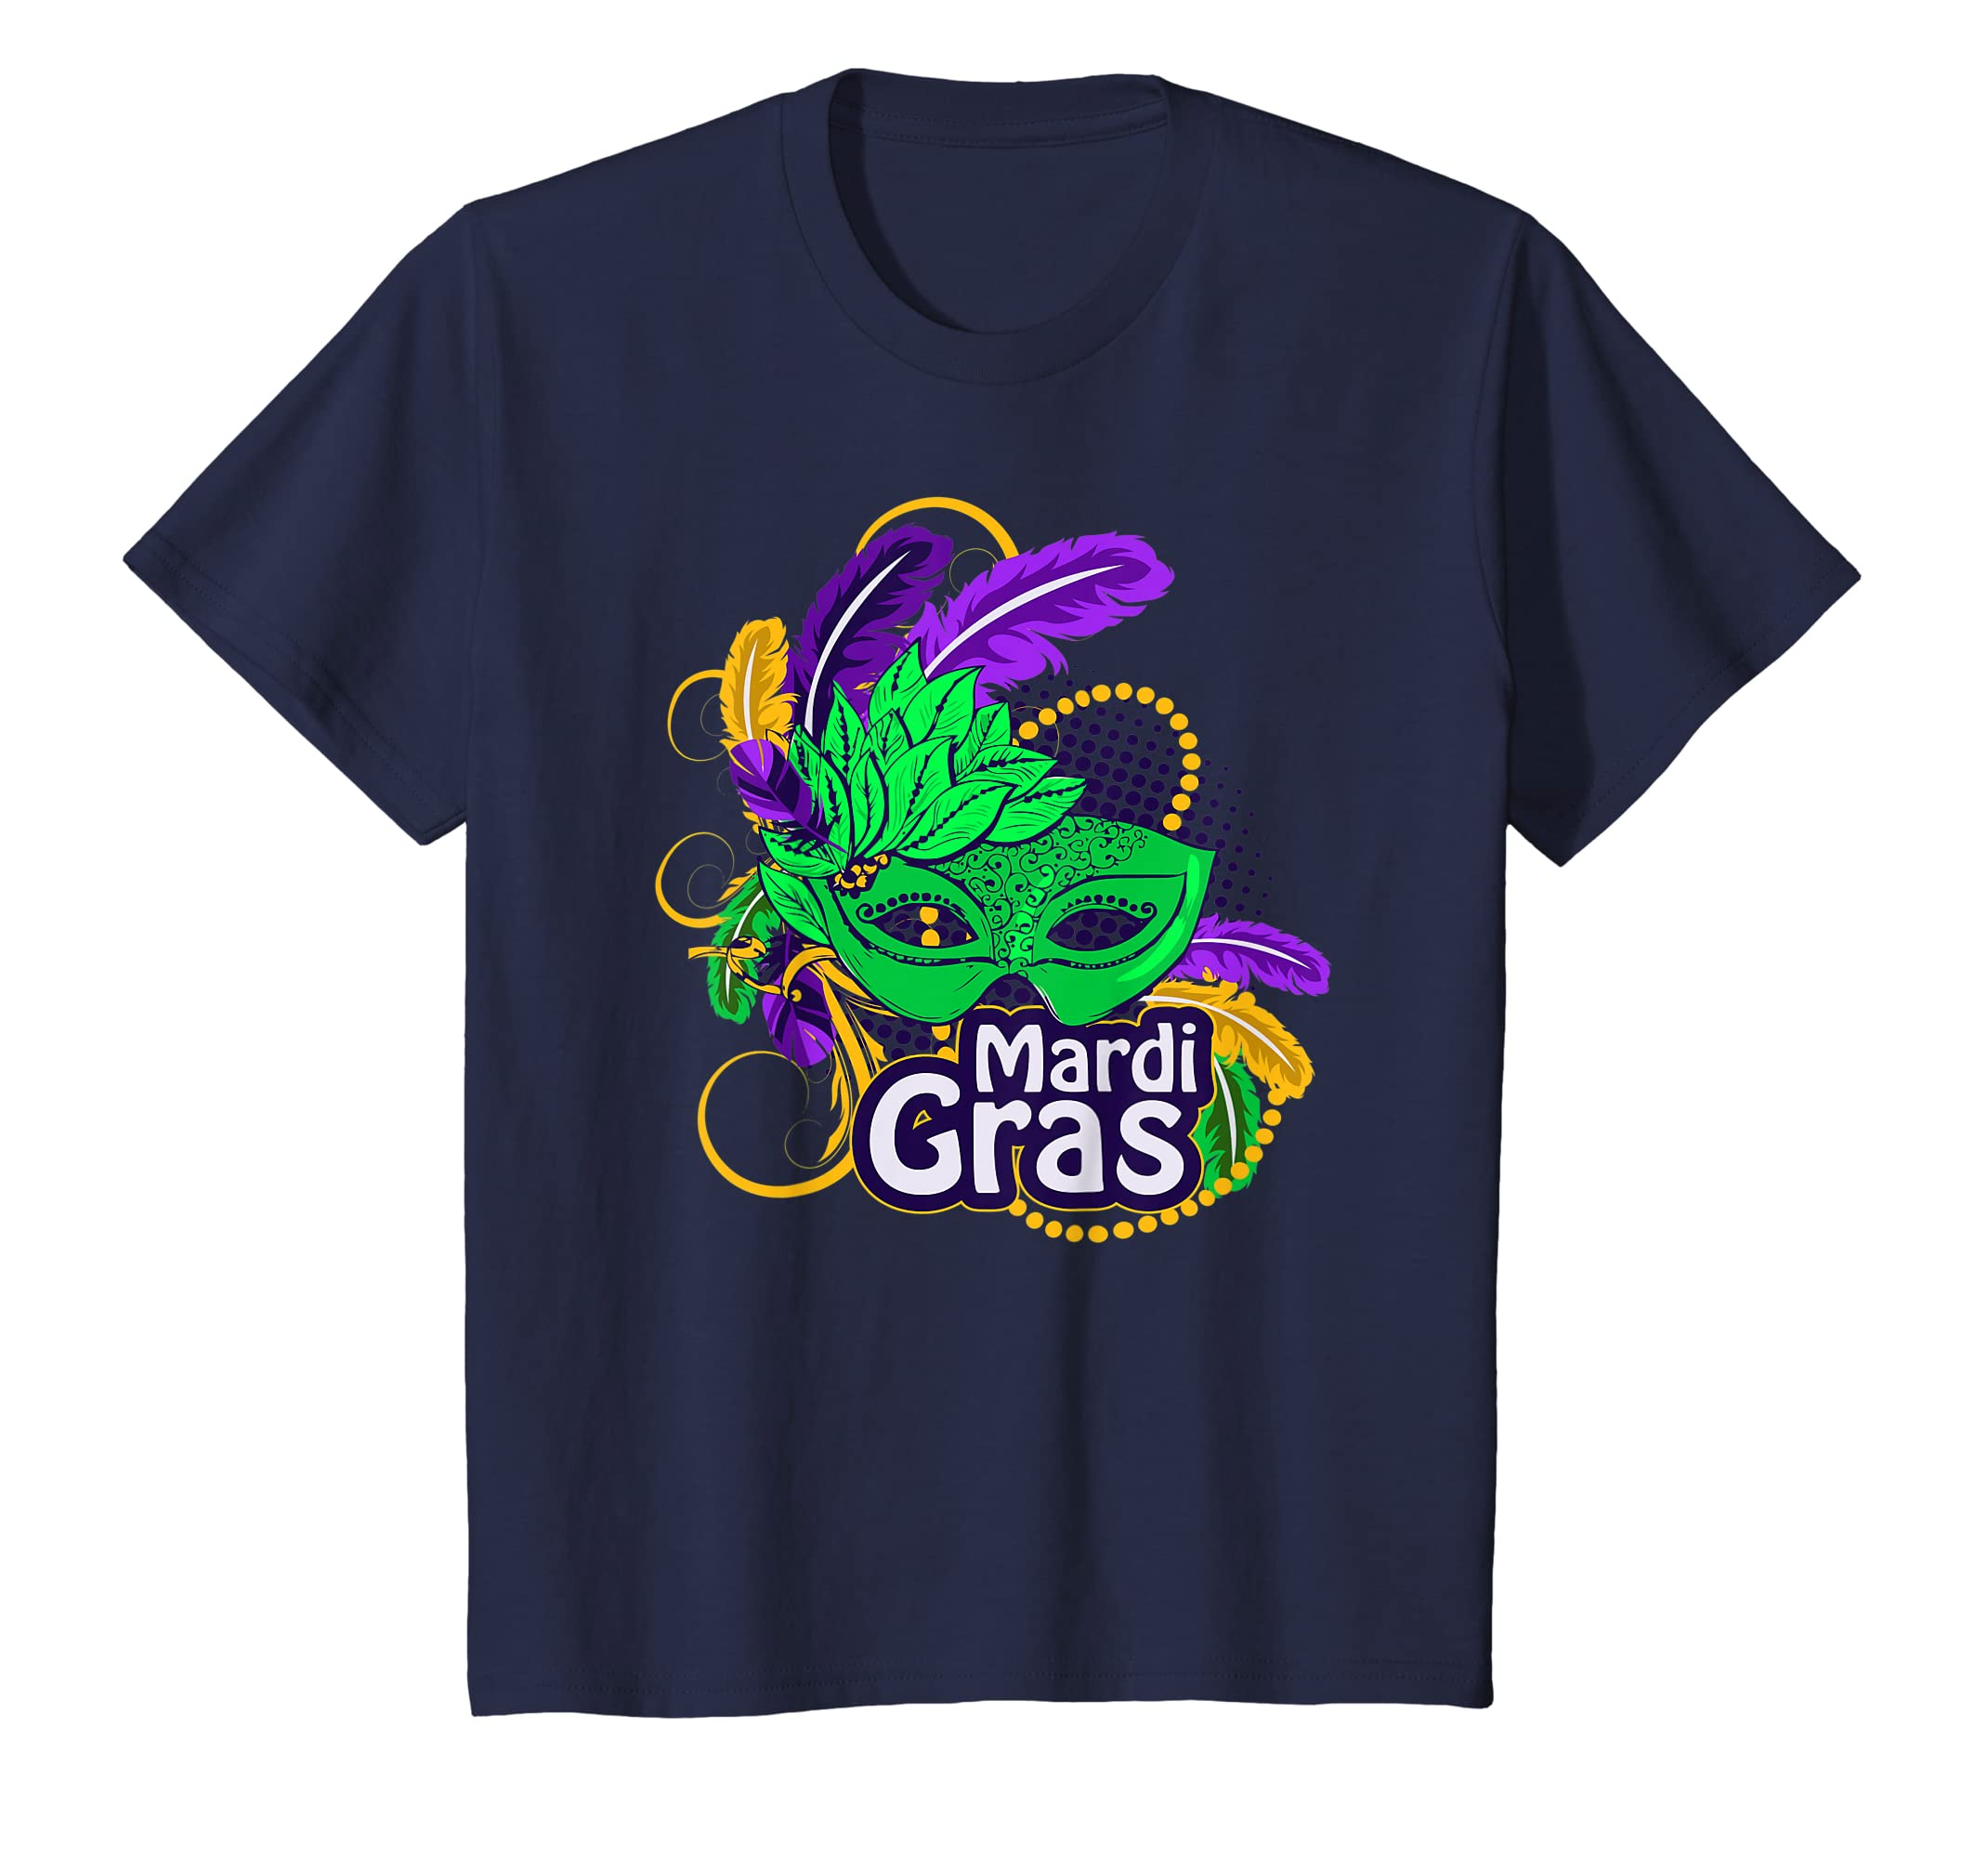 f7284efff864f4 Amazon.com: Mardi Gras T Shirt Mardi Gras 2019 Beads Mask Feathers Tee:  Clothing